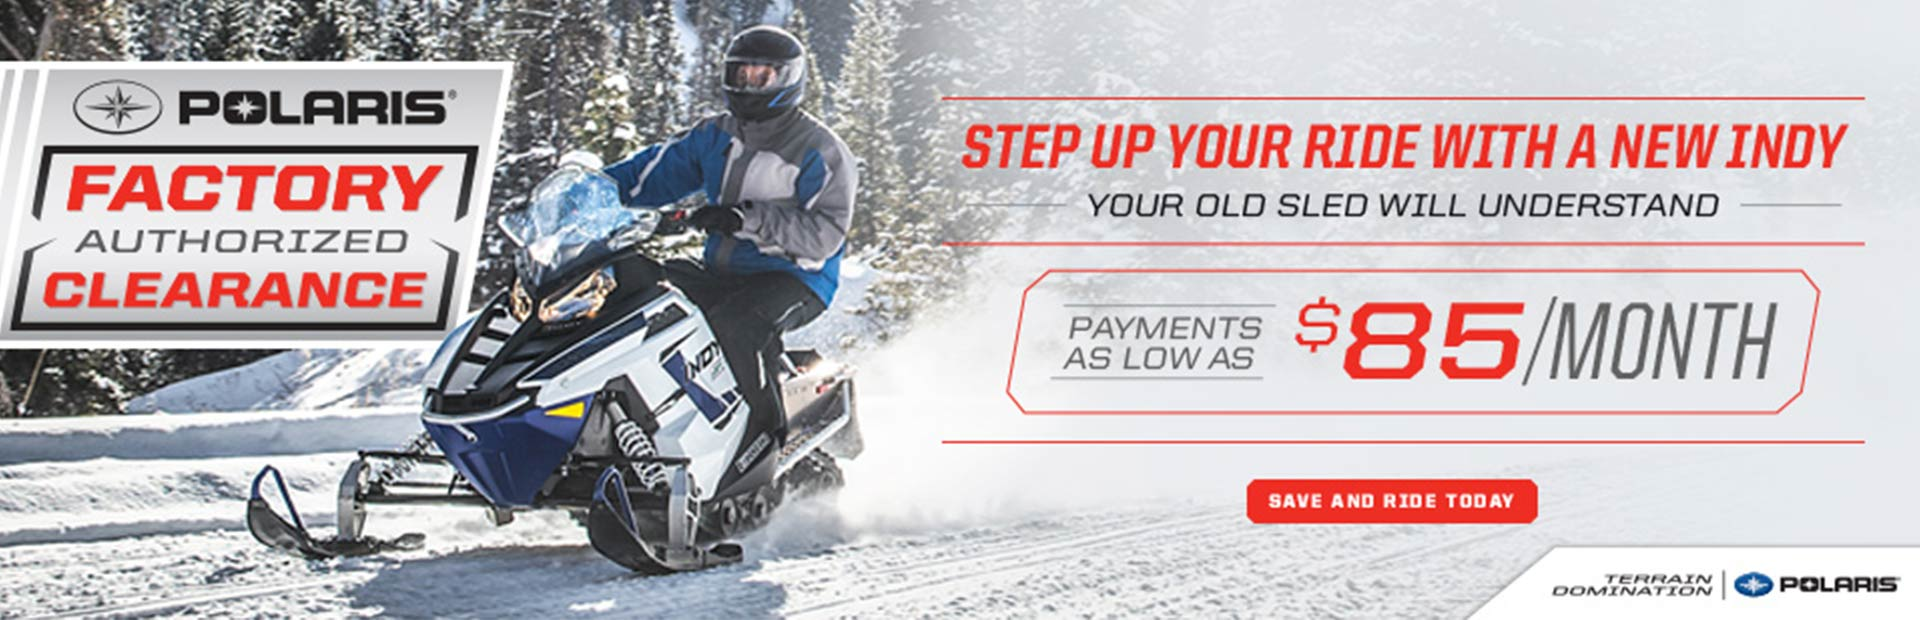 Polaris Industries: Polaris Factory Authorized Clearance (Snow)